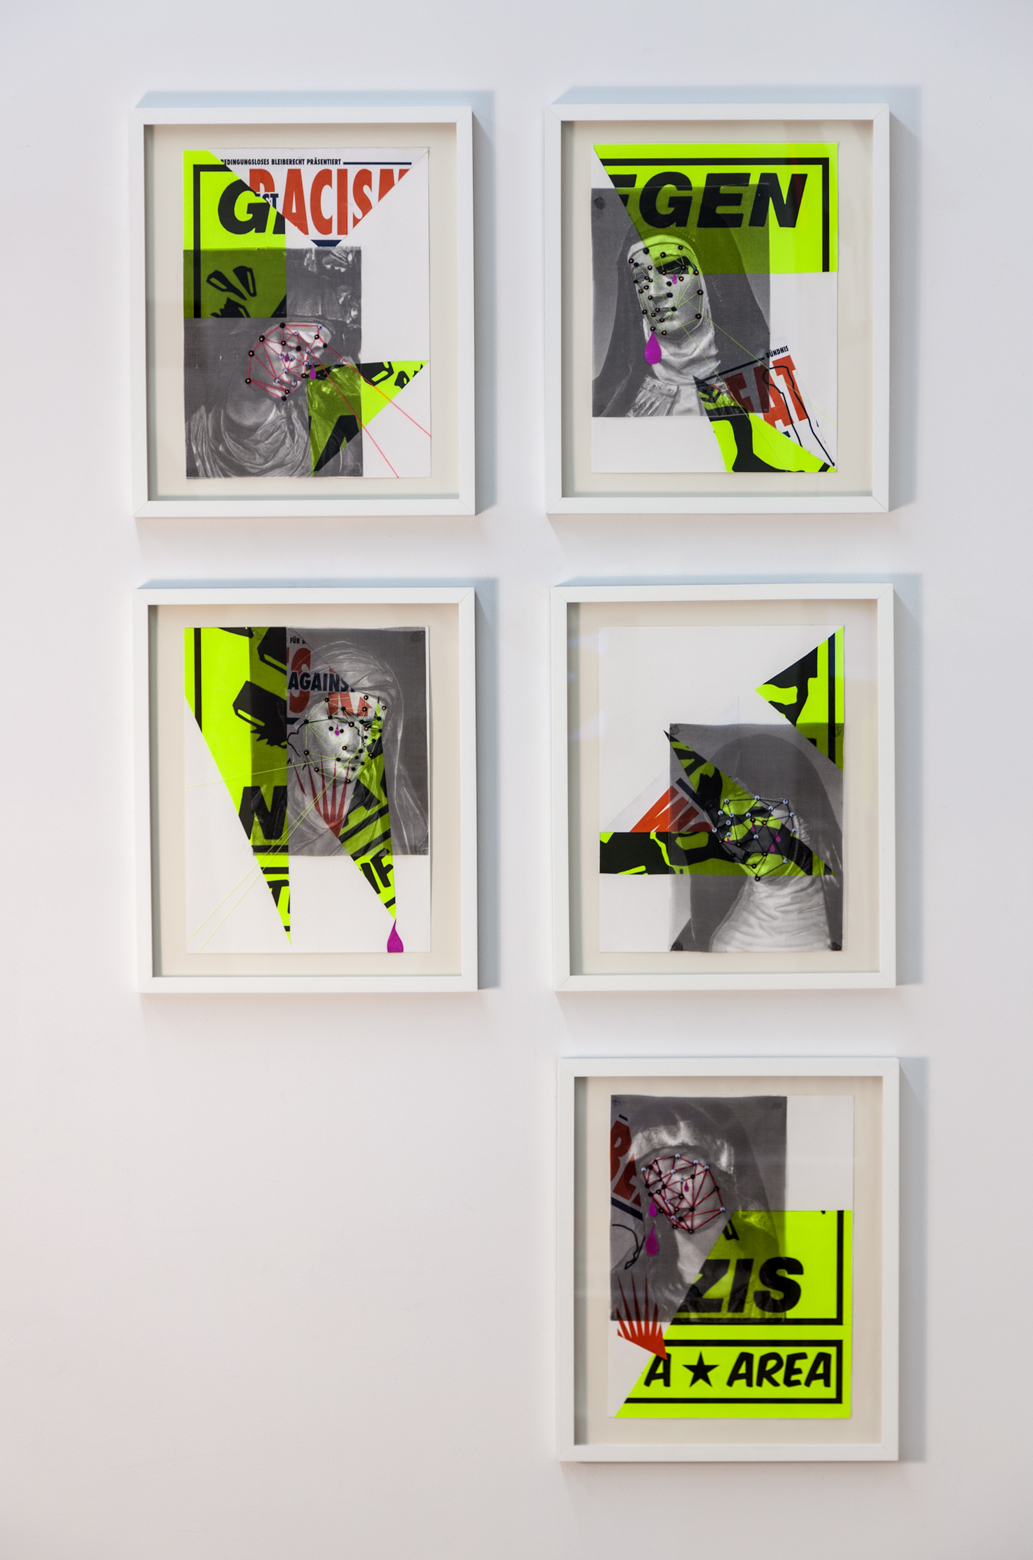 Installation image of works on paper